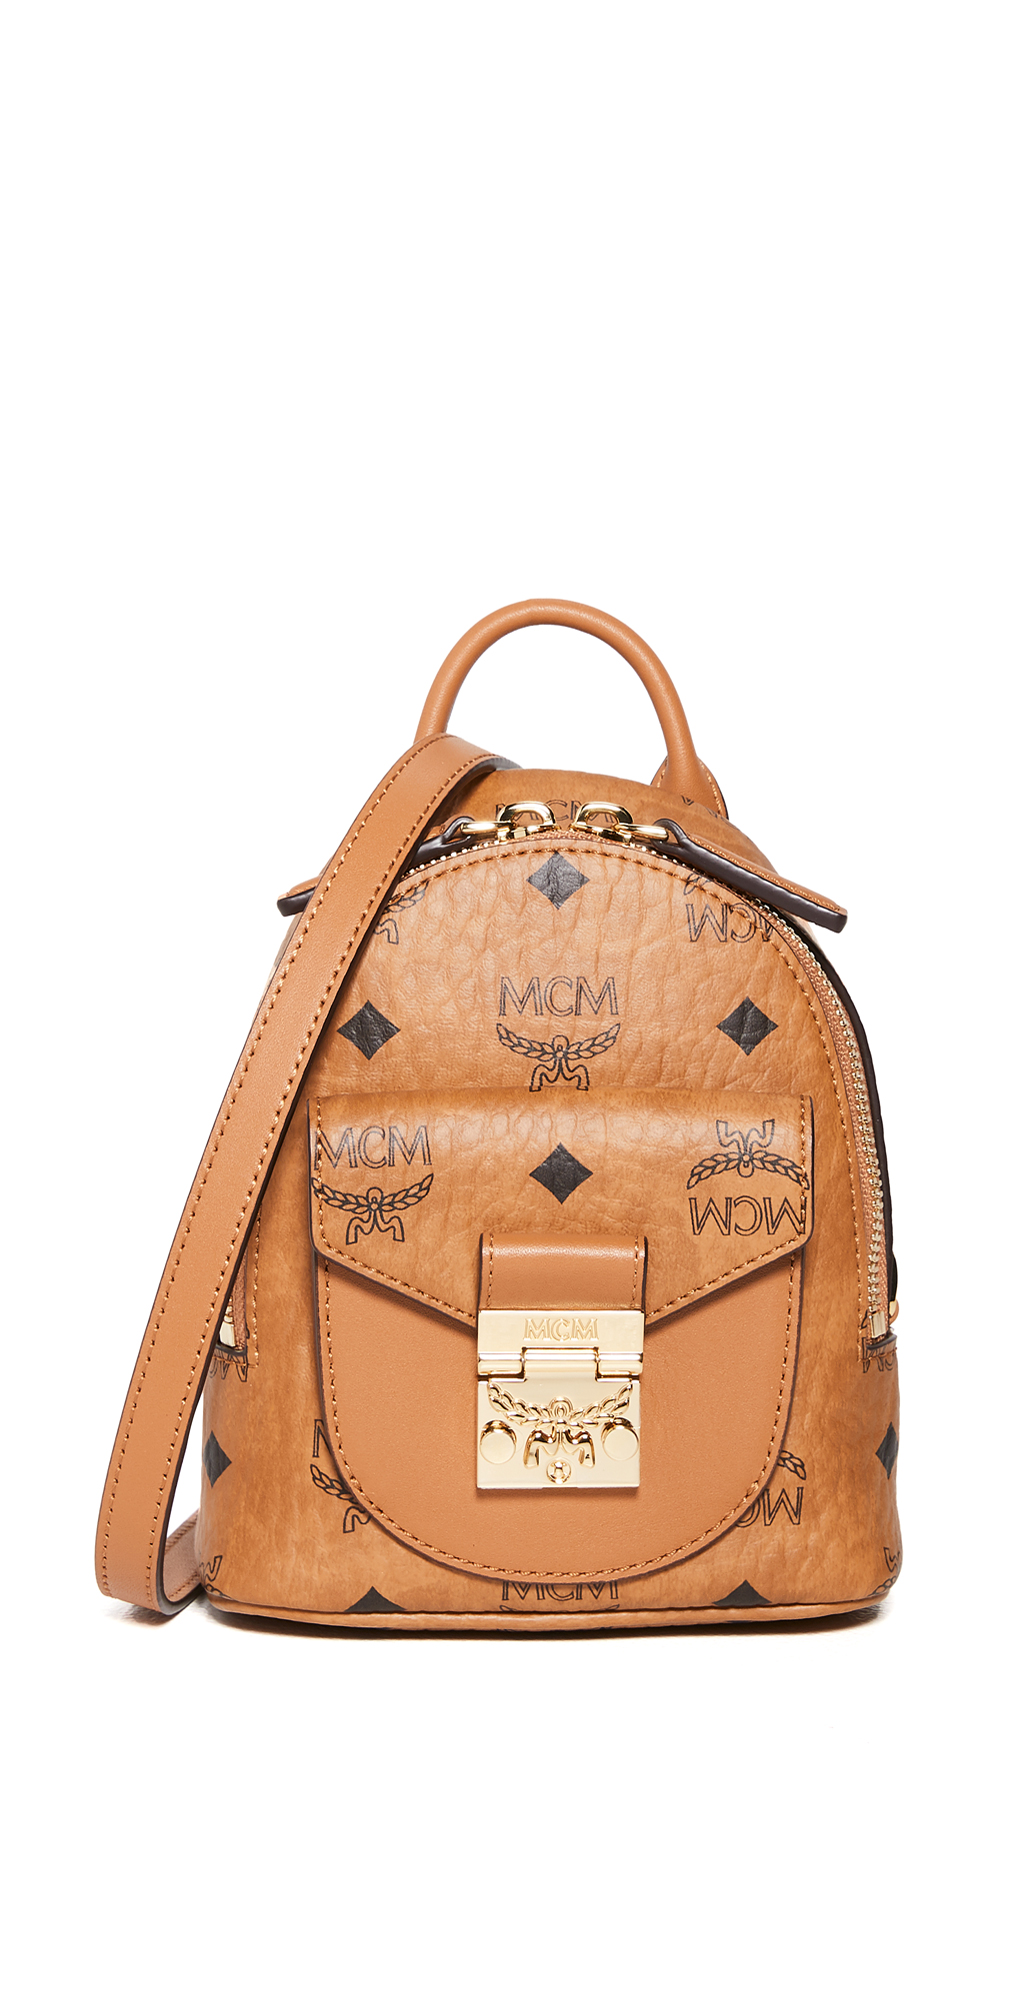 MCM Patricia Mini Crossbody Bag